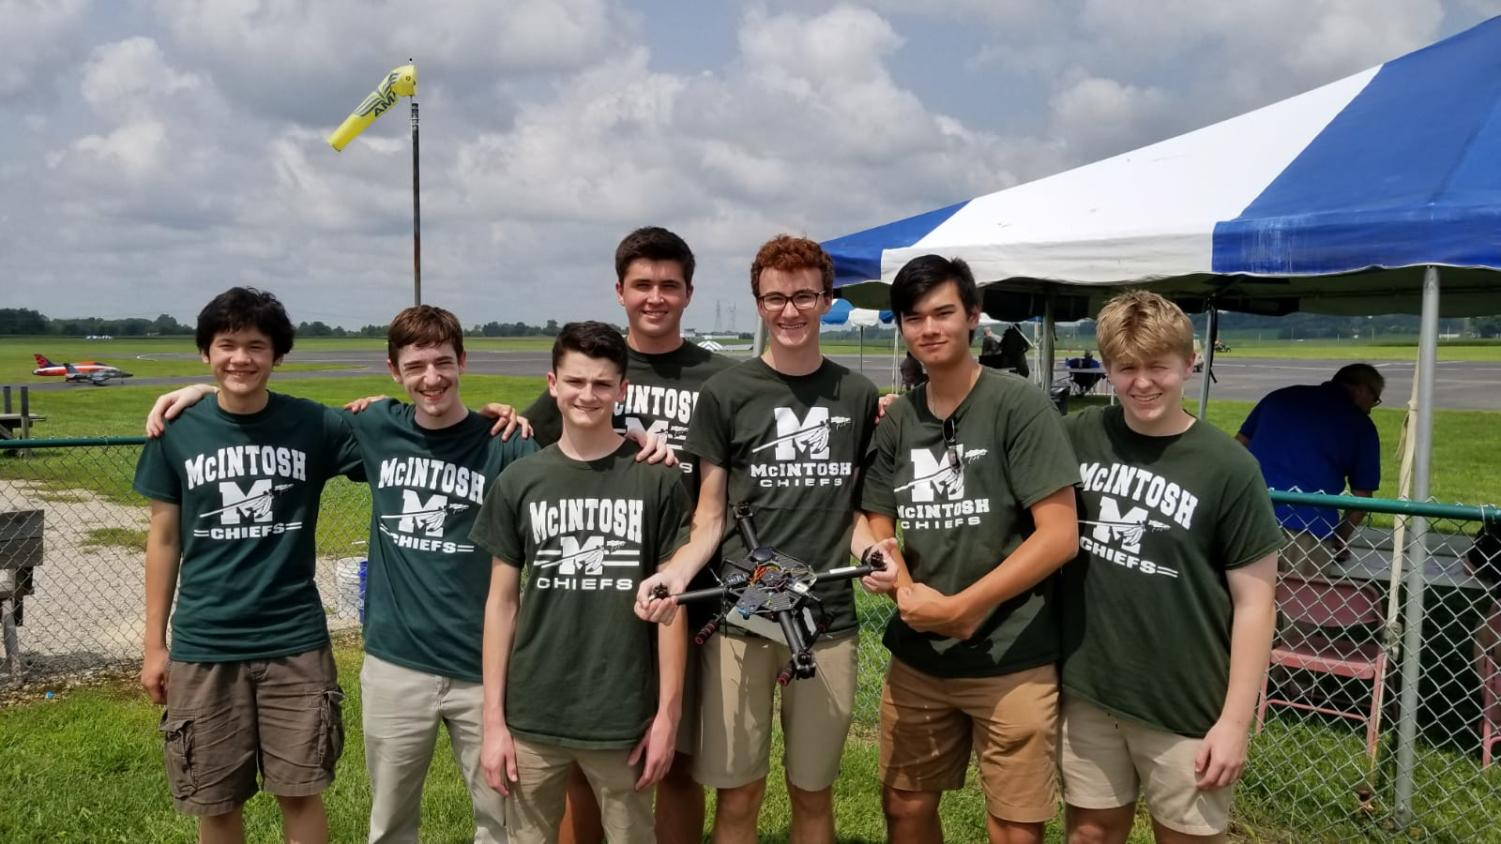 (from left-to-right: Sam Triplett, Luke Wonderley, Logan Connerat, Adrien Richez, Matthew Harmon, Robert Palla, and Noah Statton) Photo Credit: Seth Bishop The Drone Team is lining up for a quick team photo before it is their turn to compete. They would go on to win the competition, securing the national title.